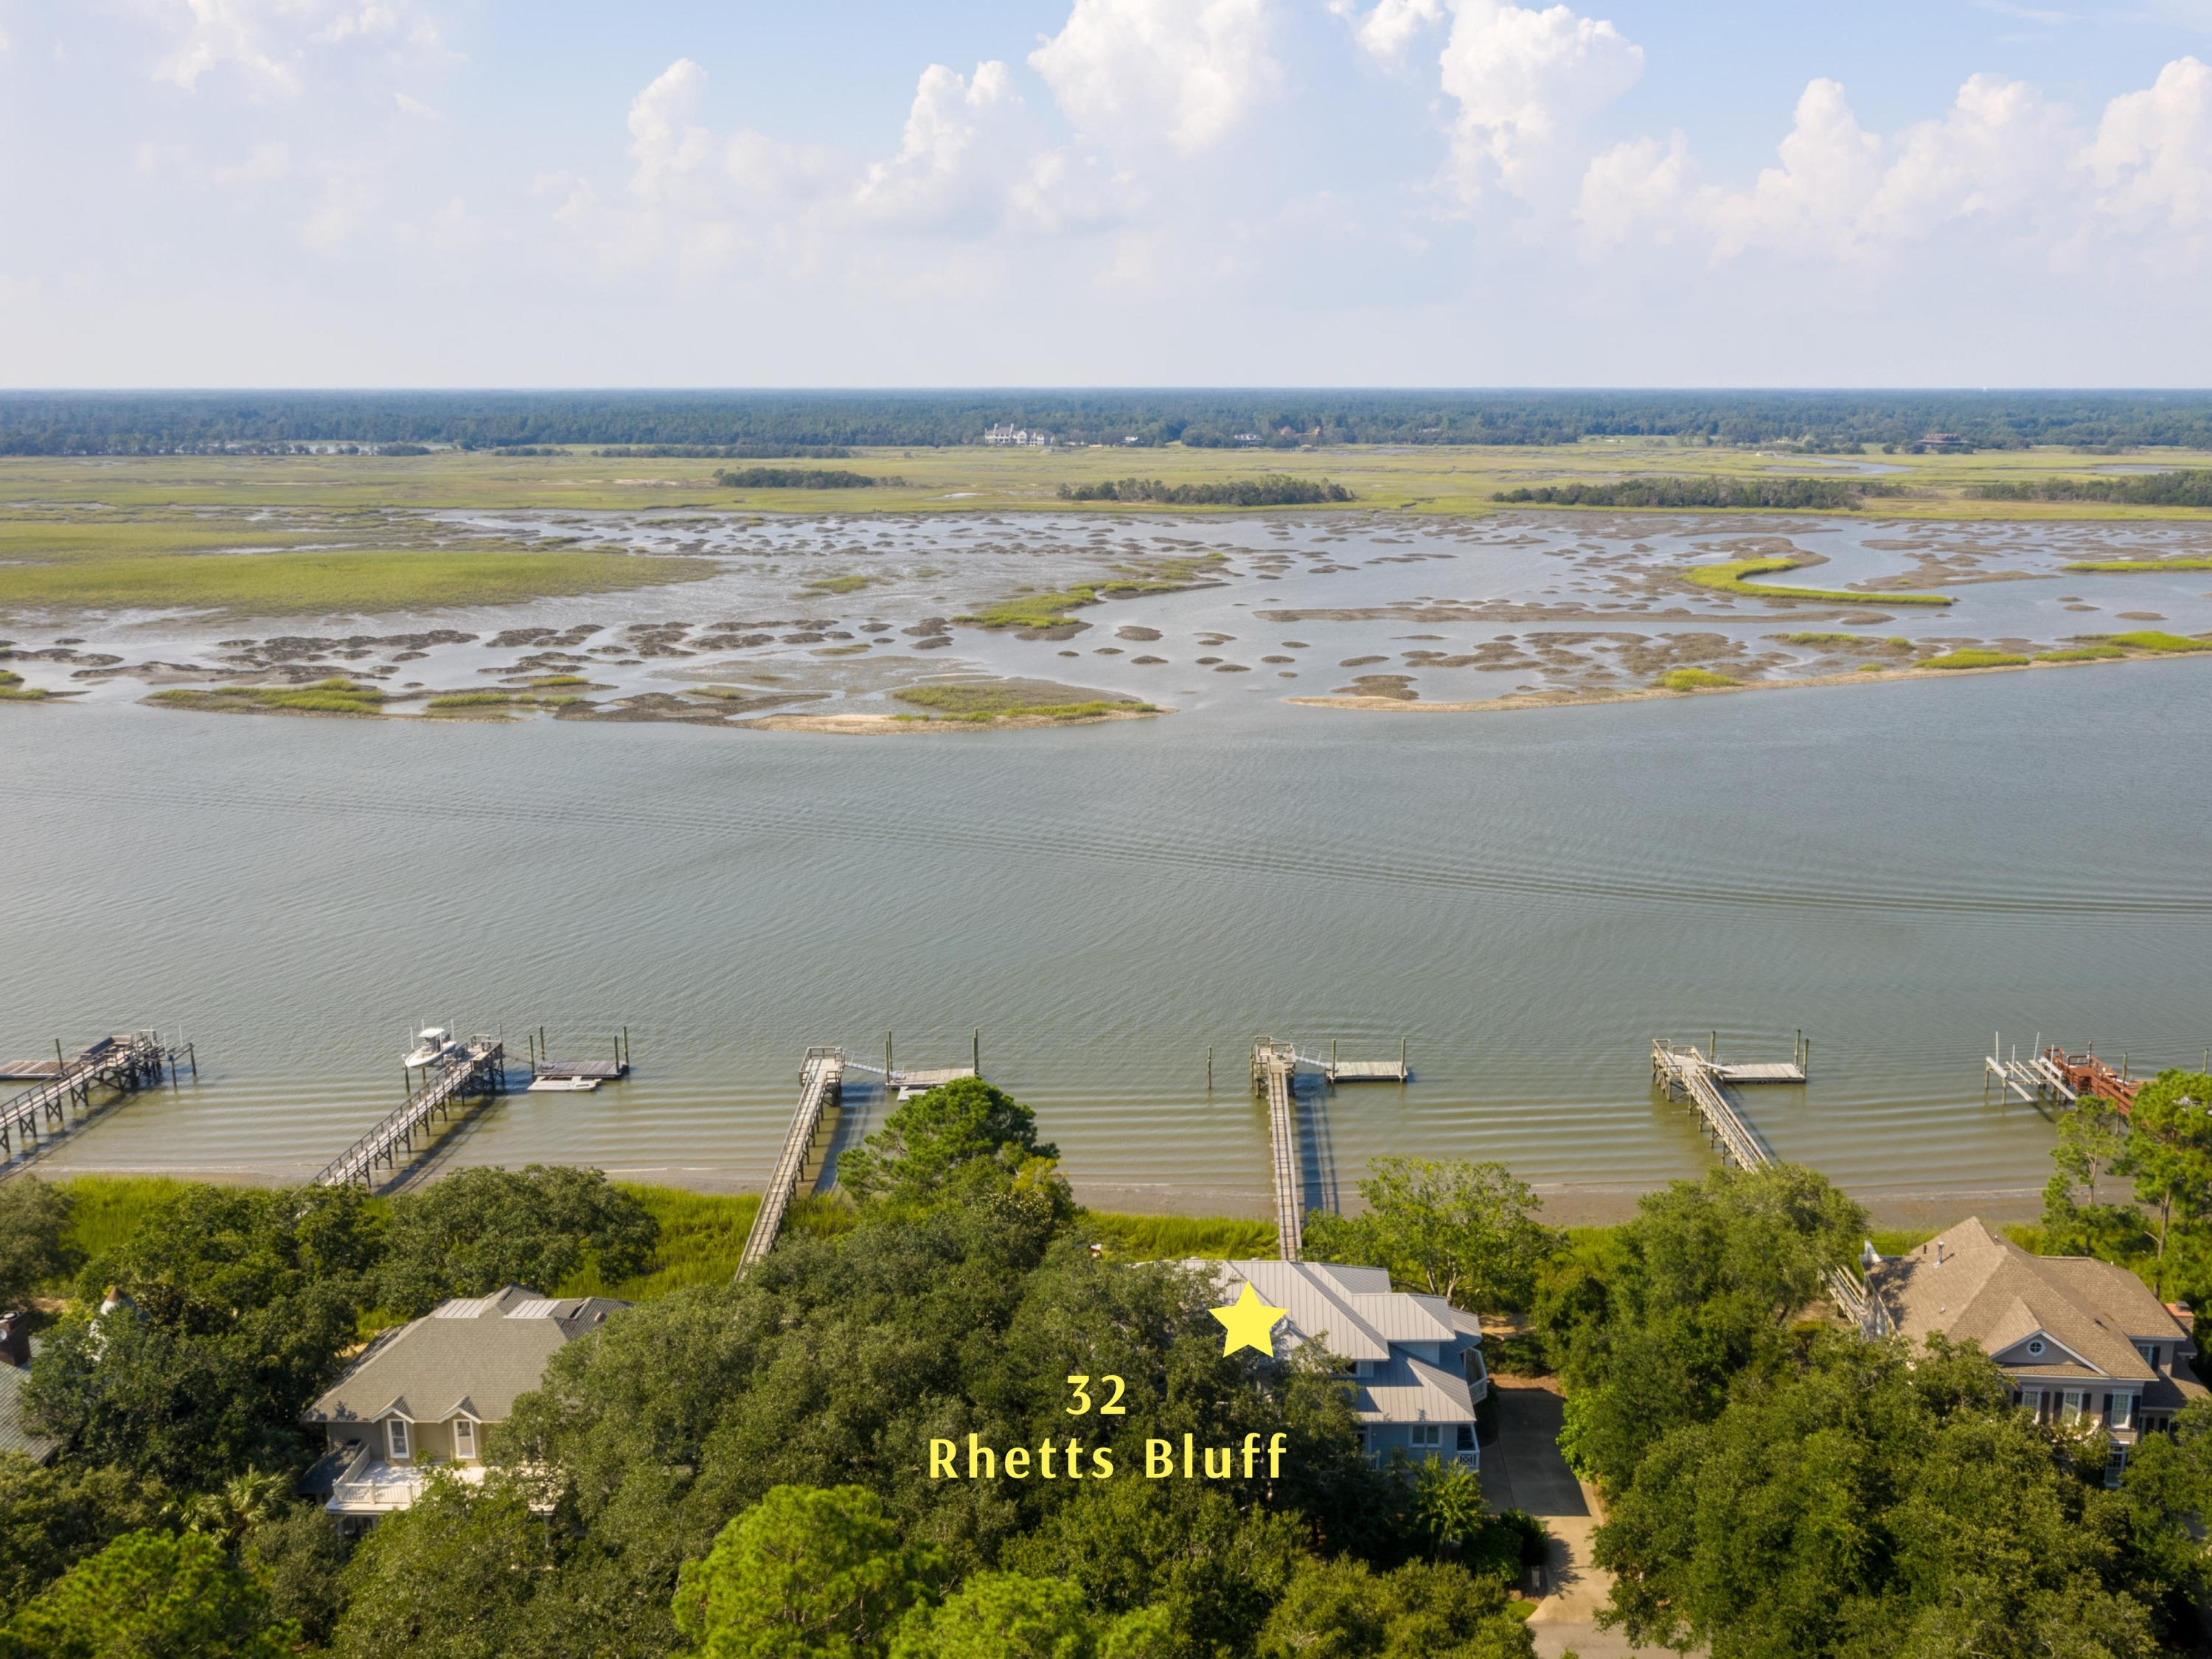 32 Rhetts Bluff Road Kiawah Island, SC 29455